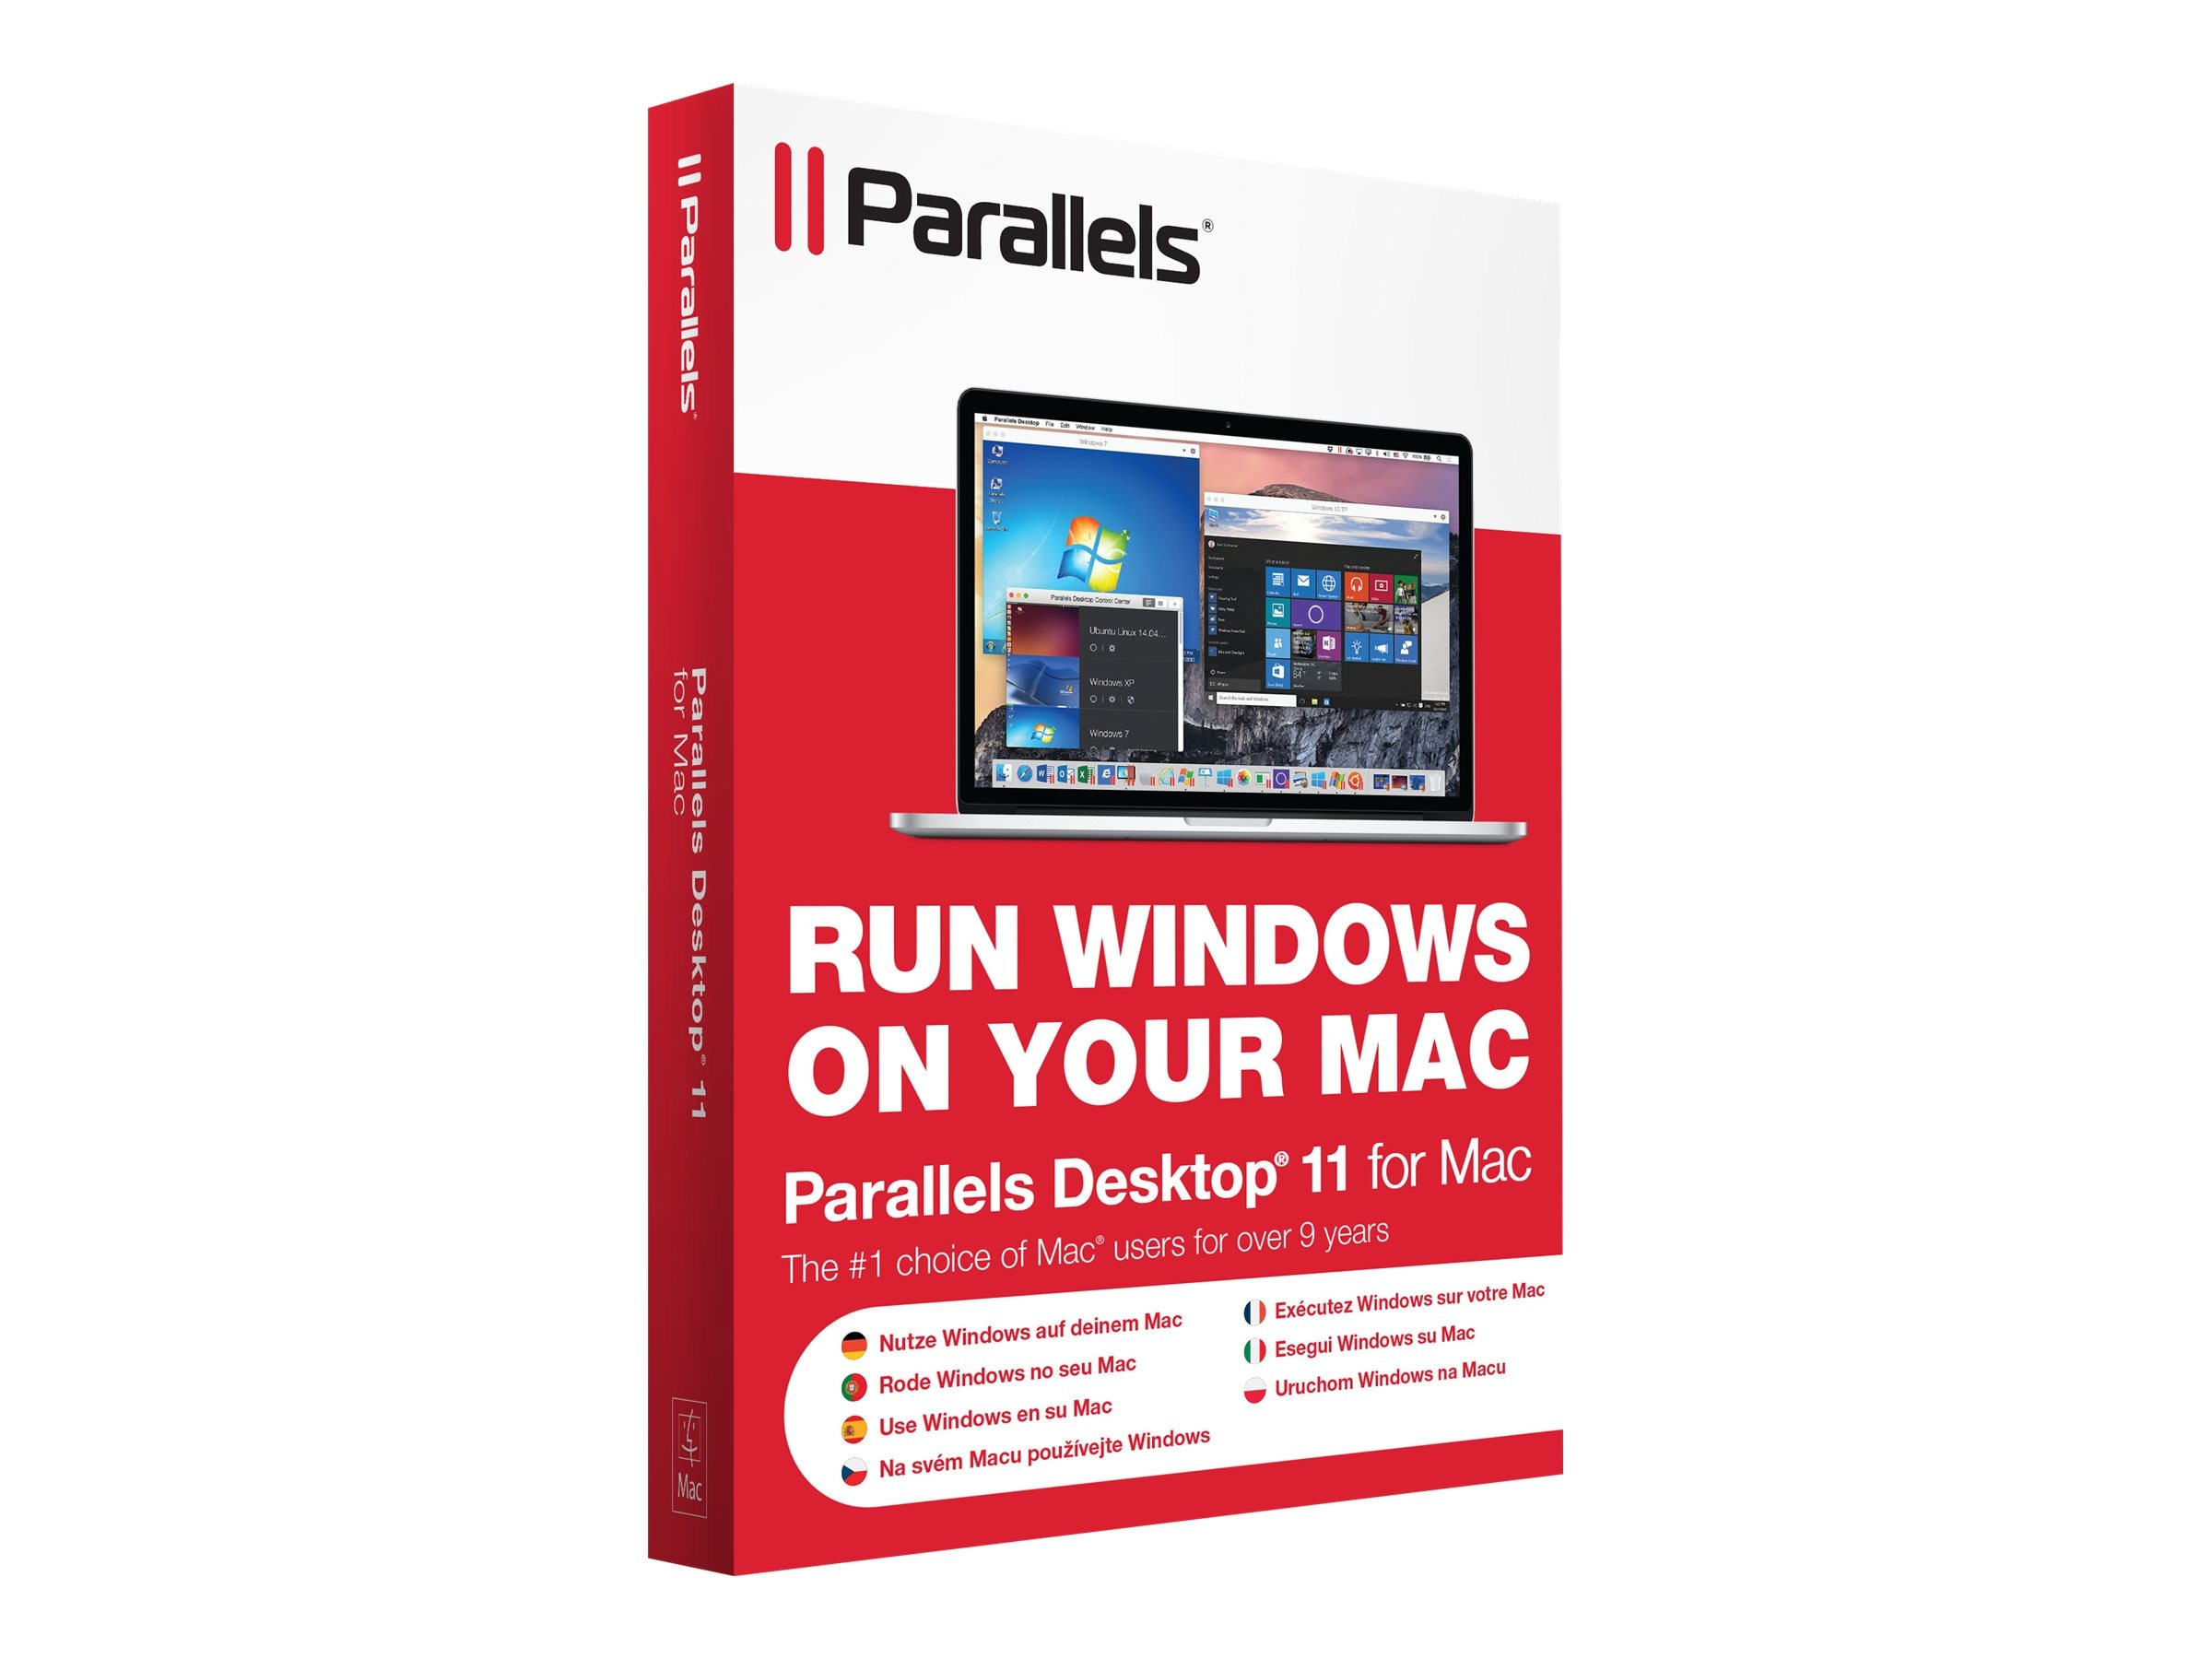 Parallels Corp. Parallels Desktop 11.0 for Mac Retail Box NA, PDFM11L-BX1-NA, 30607081, Software - Virtualization